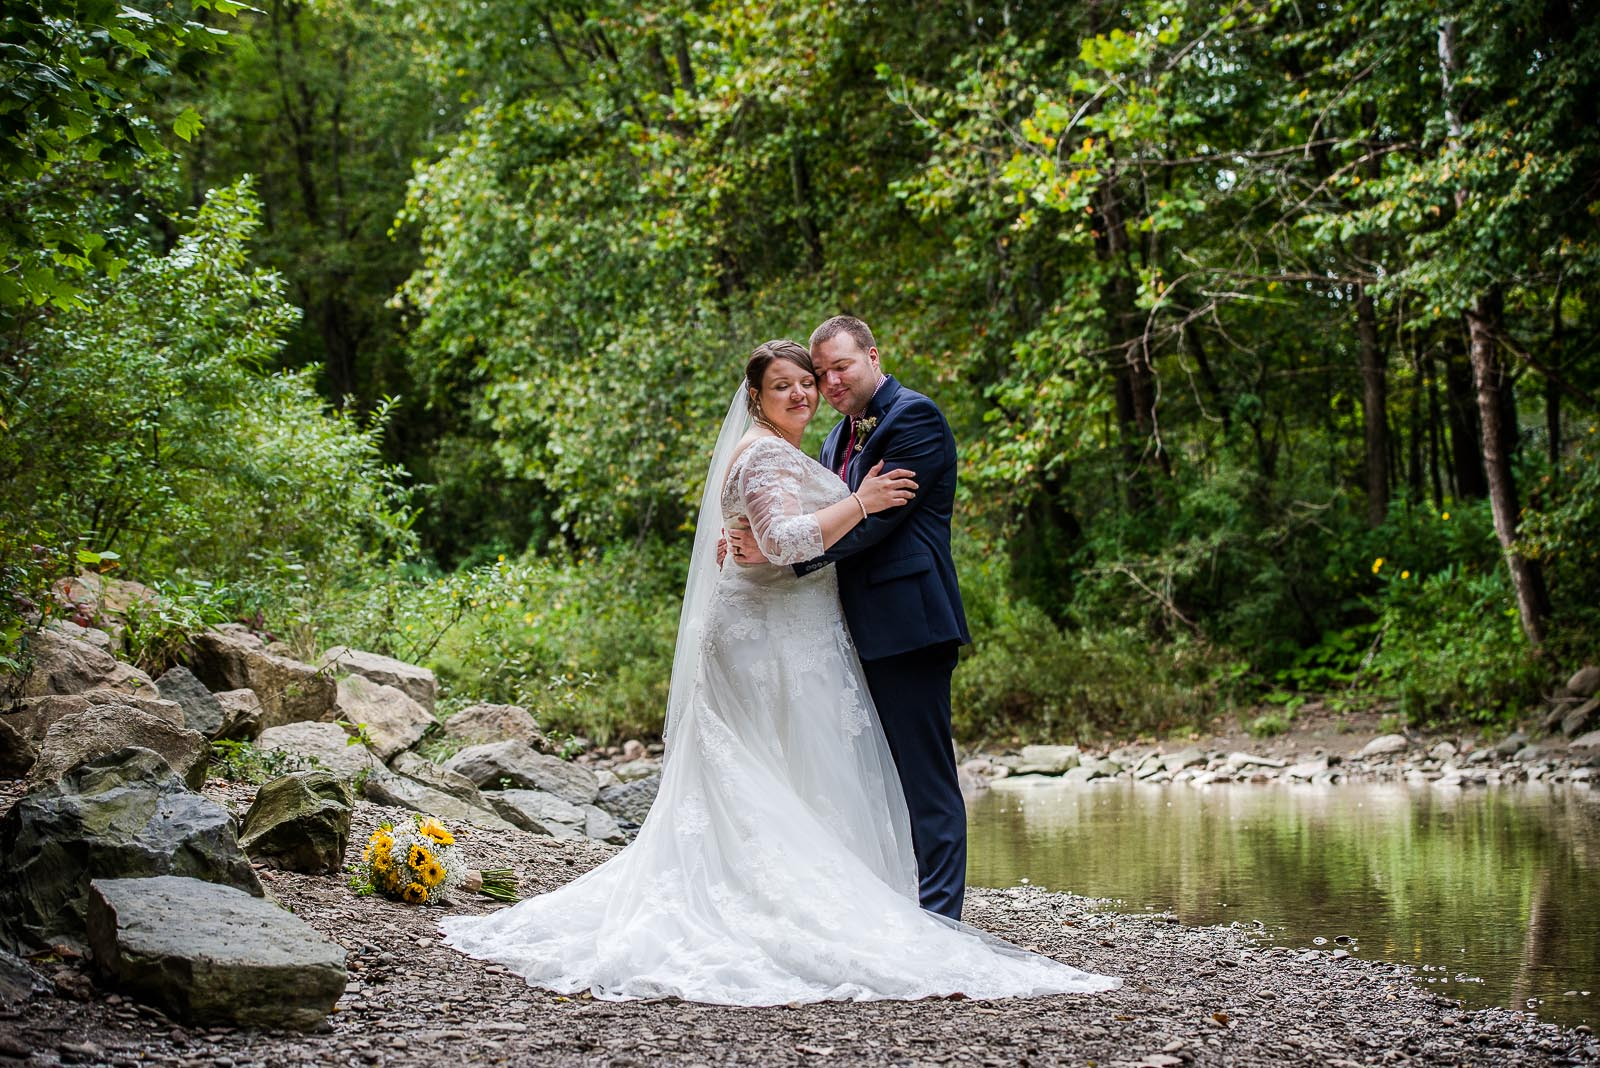 Eric_and_Christy_Photography_Blog_Wedding_Stacey_Geoff-50